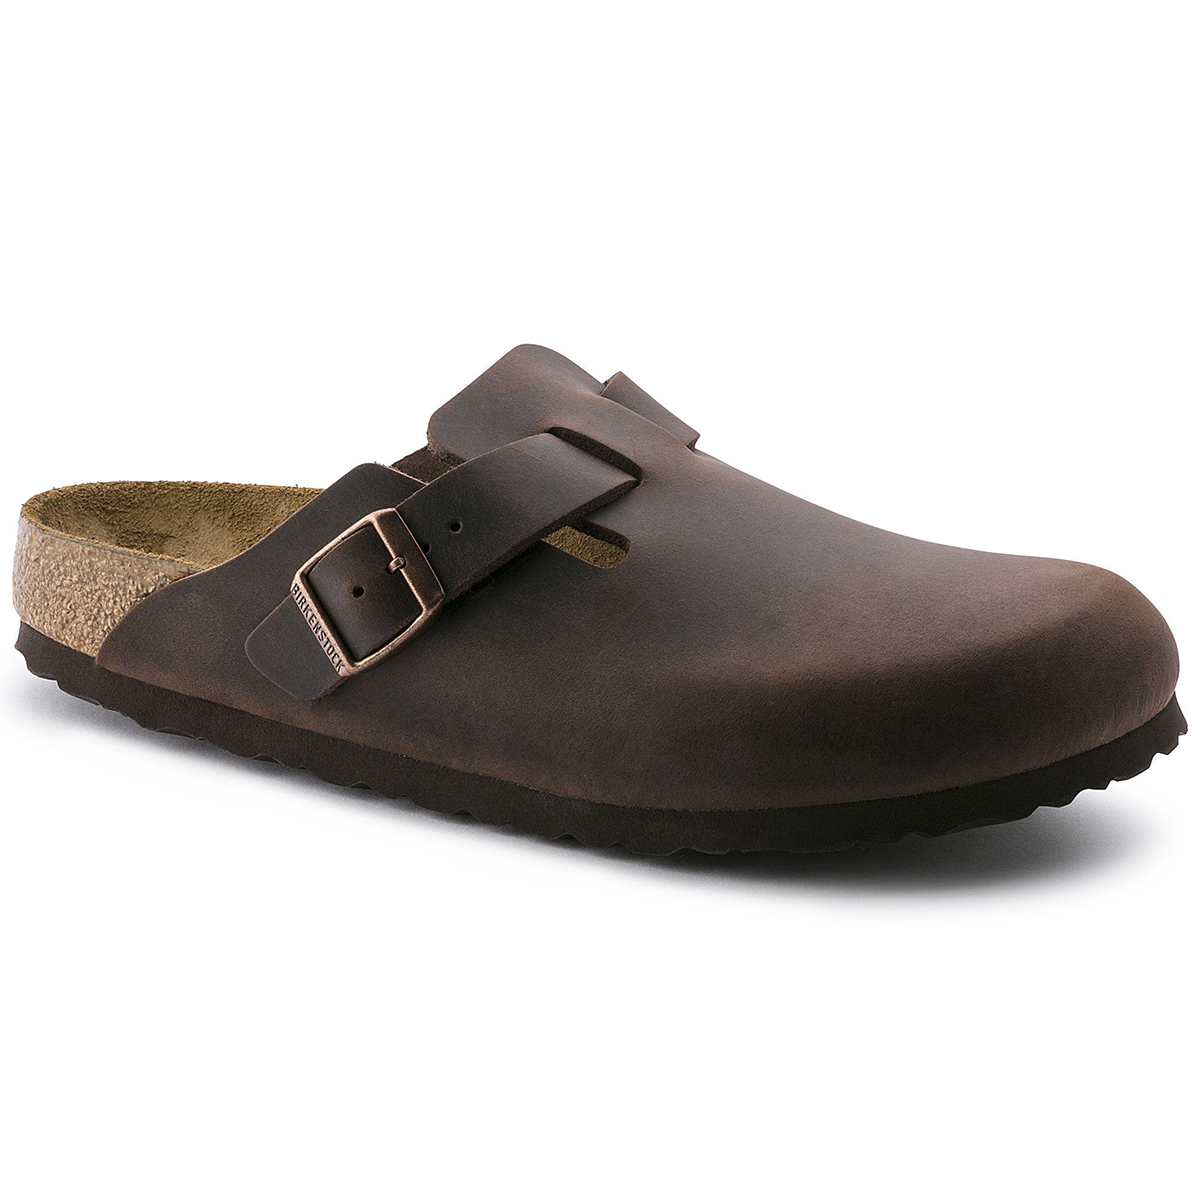 Birkenstock Boston Habana Leather 860131